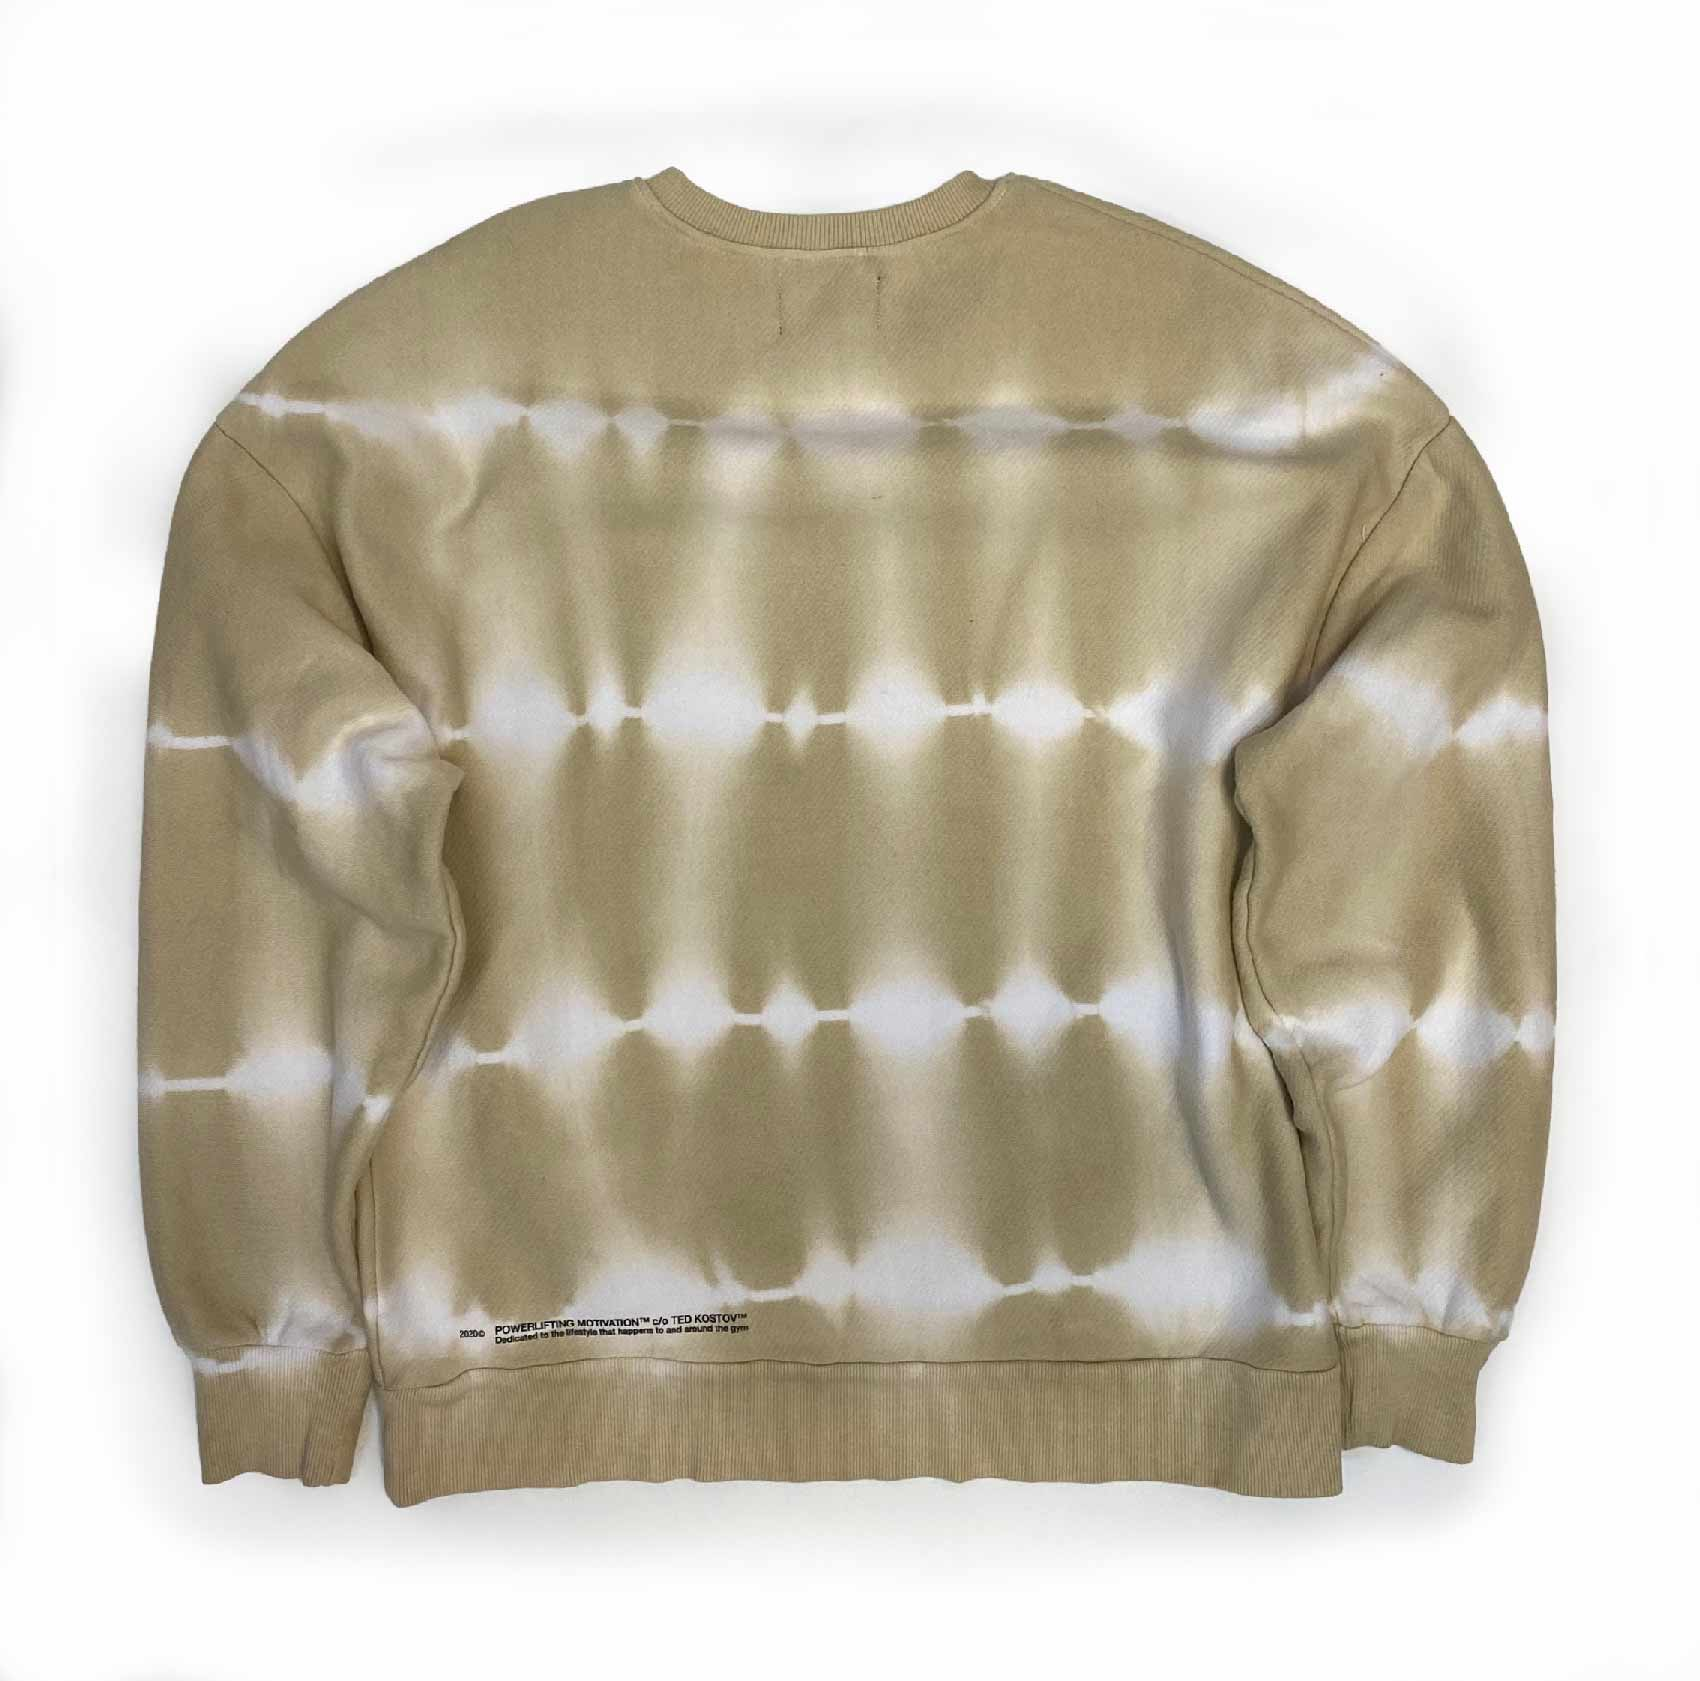 washed out sweatshirt for her back